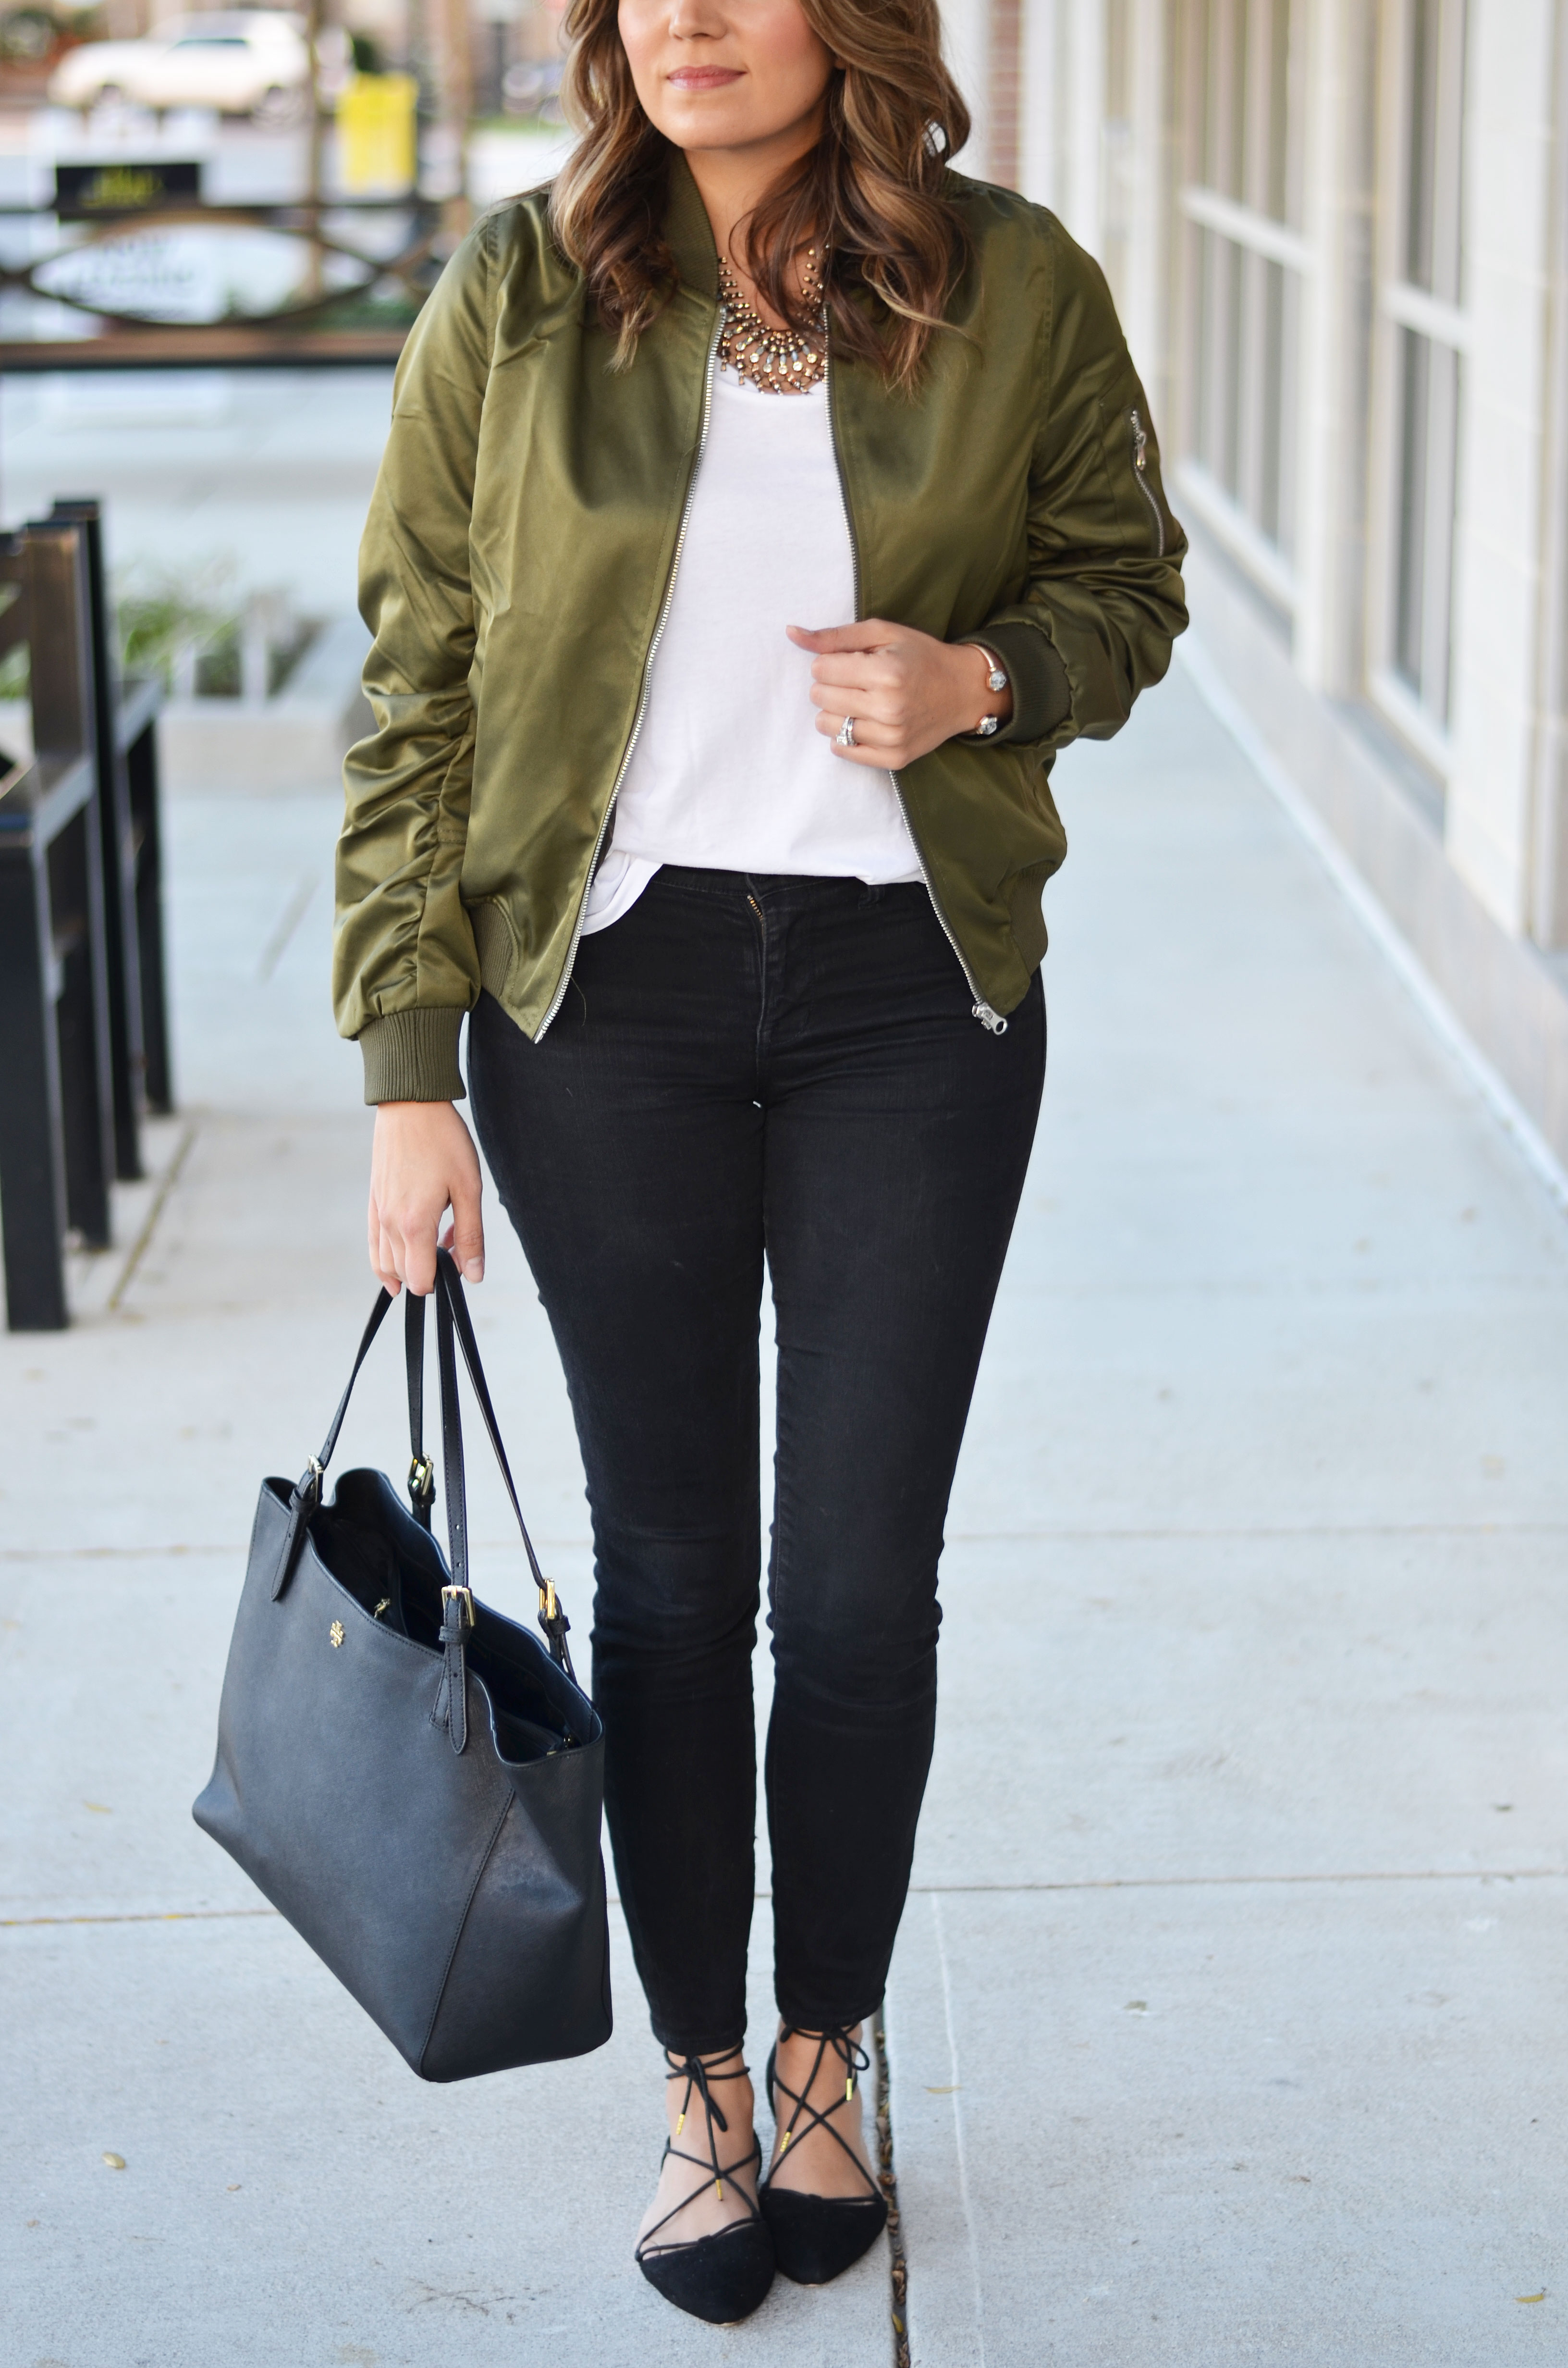 satin bomber jacket outfit idea - green bomber jacket with white tee and black skinny jeans | www.bylaurenm.com